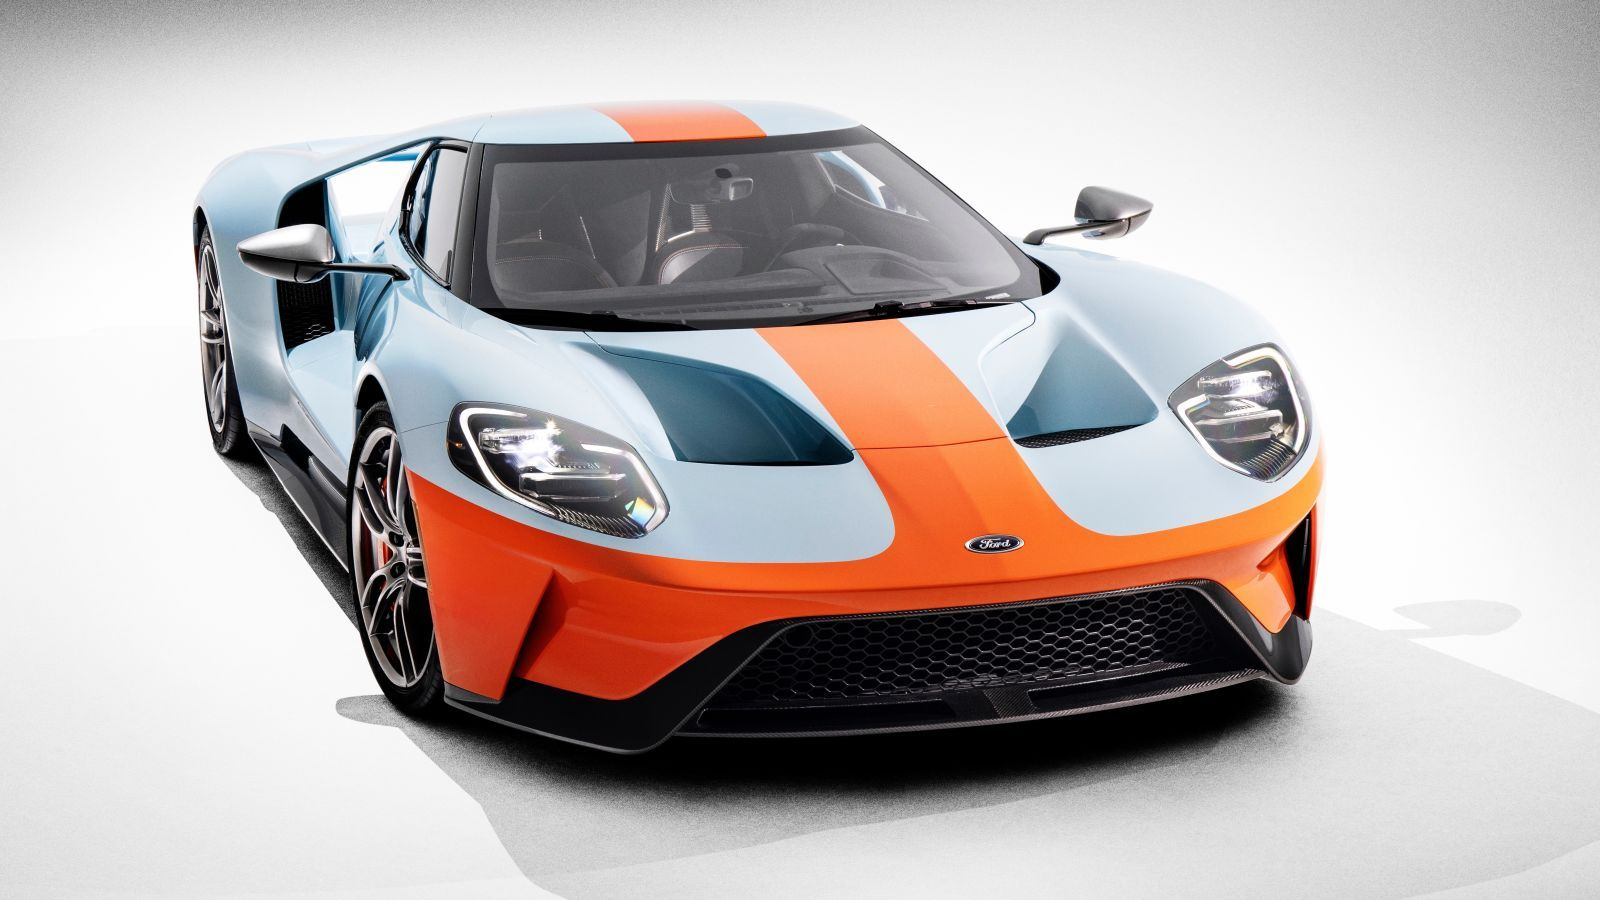 Settled The New Ford Gt Looks Best In Gulf Livery Ford Gt Ford Gt Gulf Super Cars